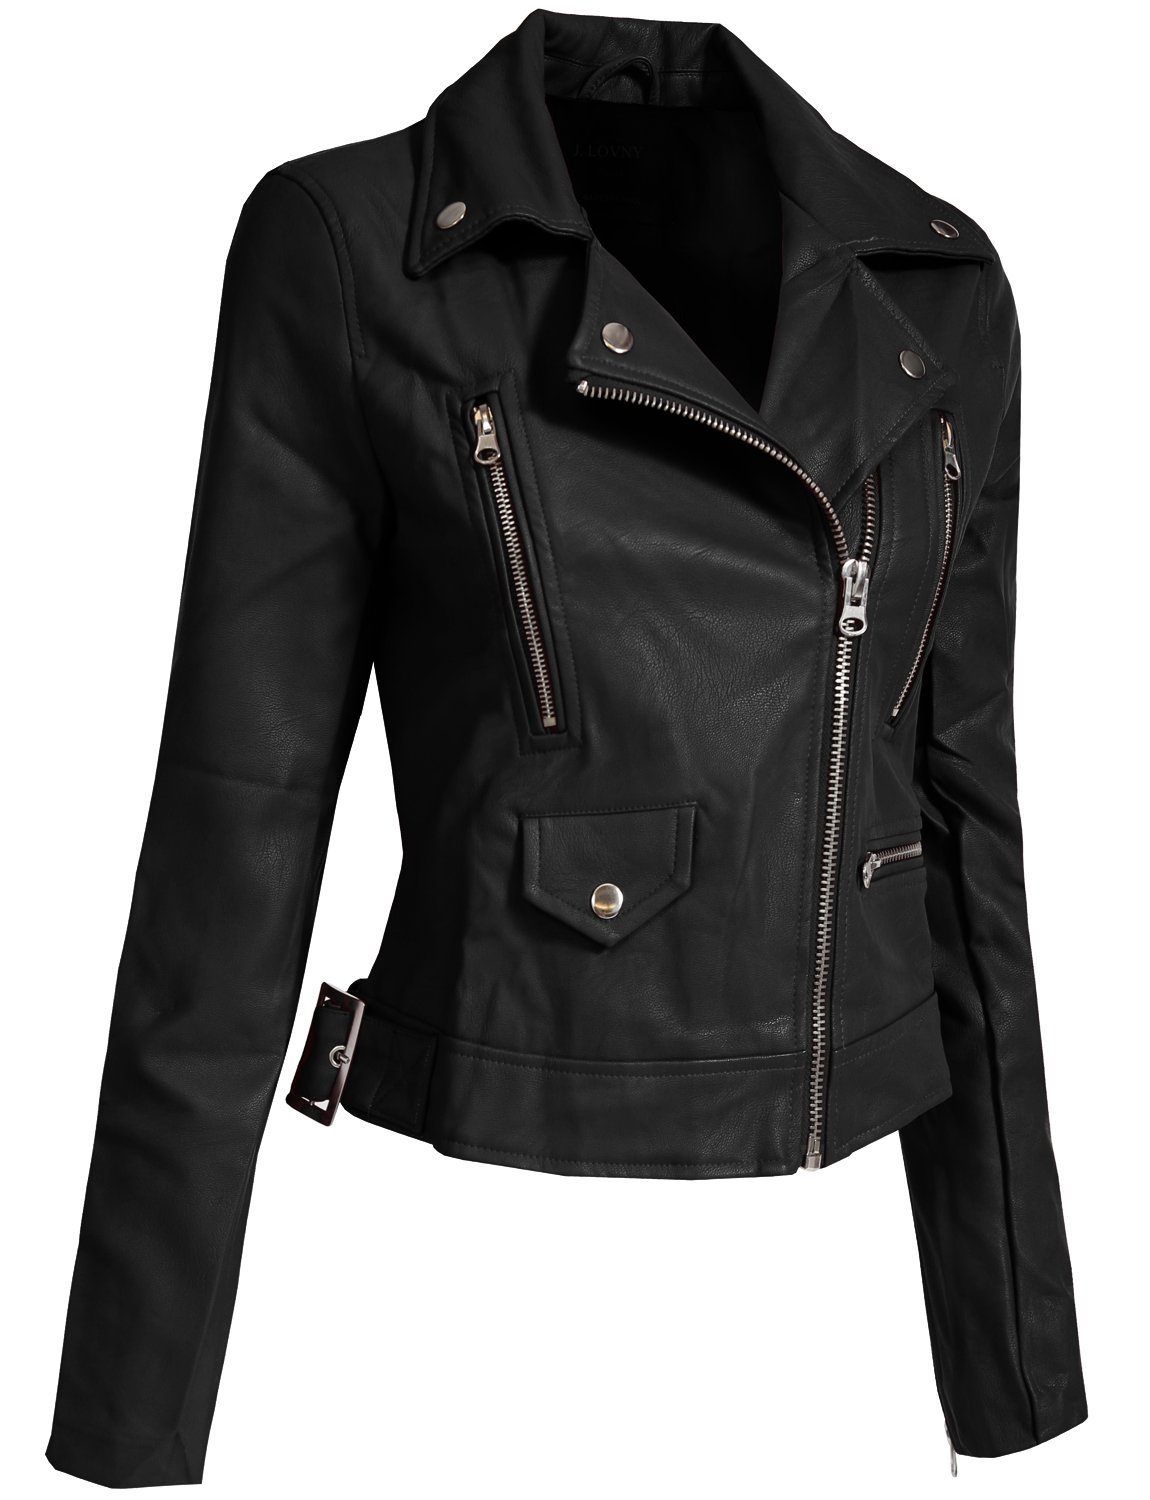 J. LOVNY Women's Fitted Faux Leather Zip Up Moto Jacket With Hoodie by J. LOVNY